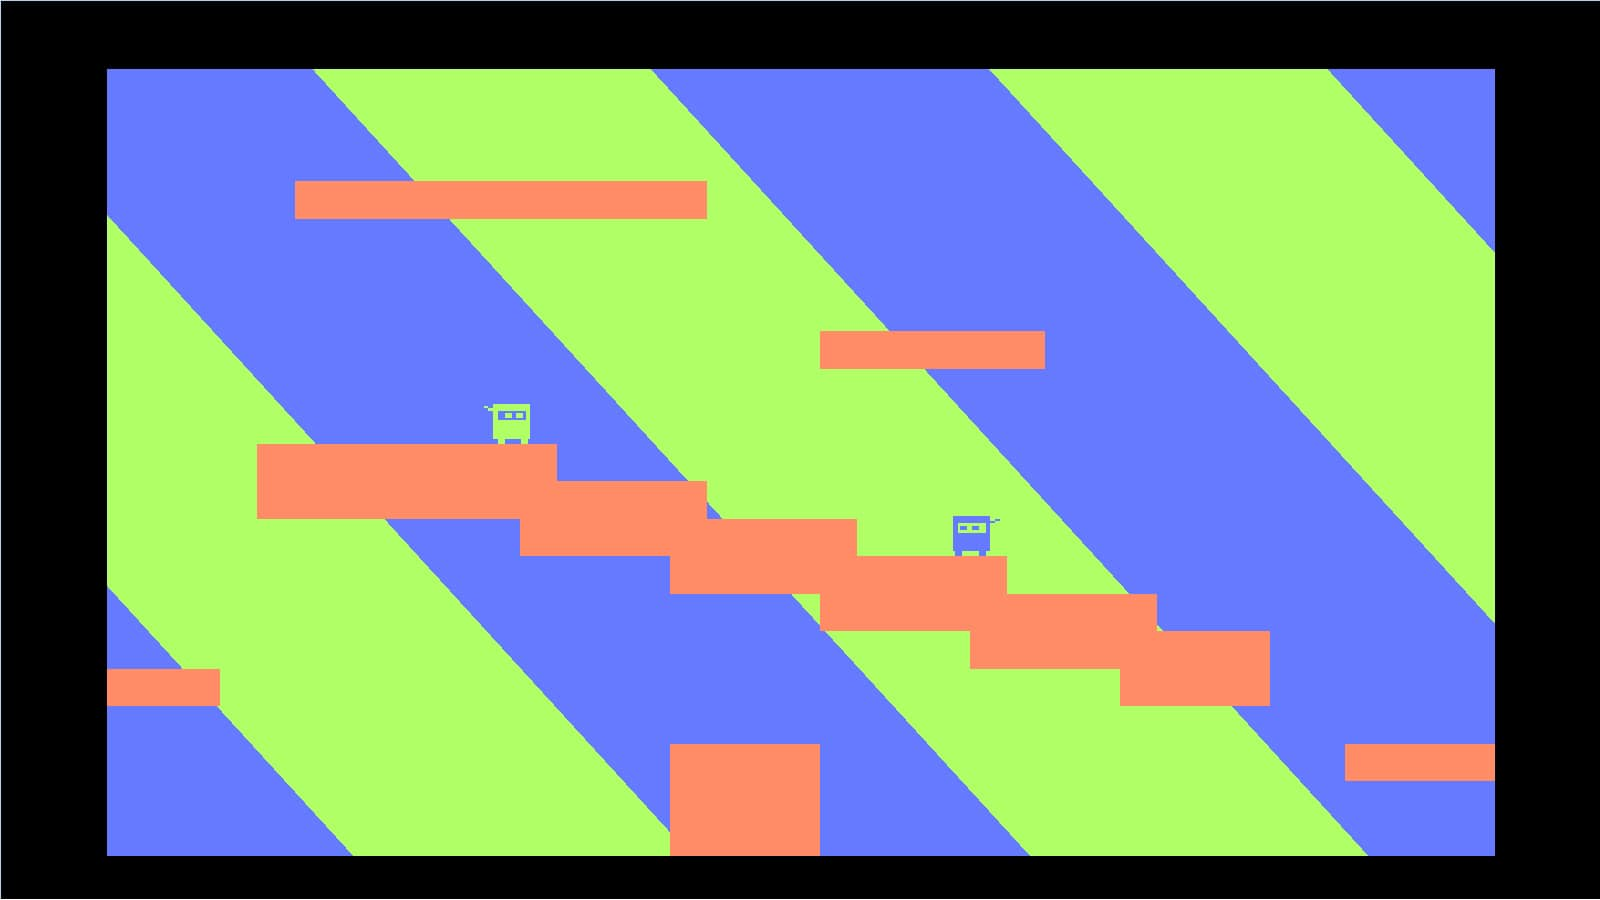 Two square green and blue ninjas face each other on a peach colored zig-zagging platform.